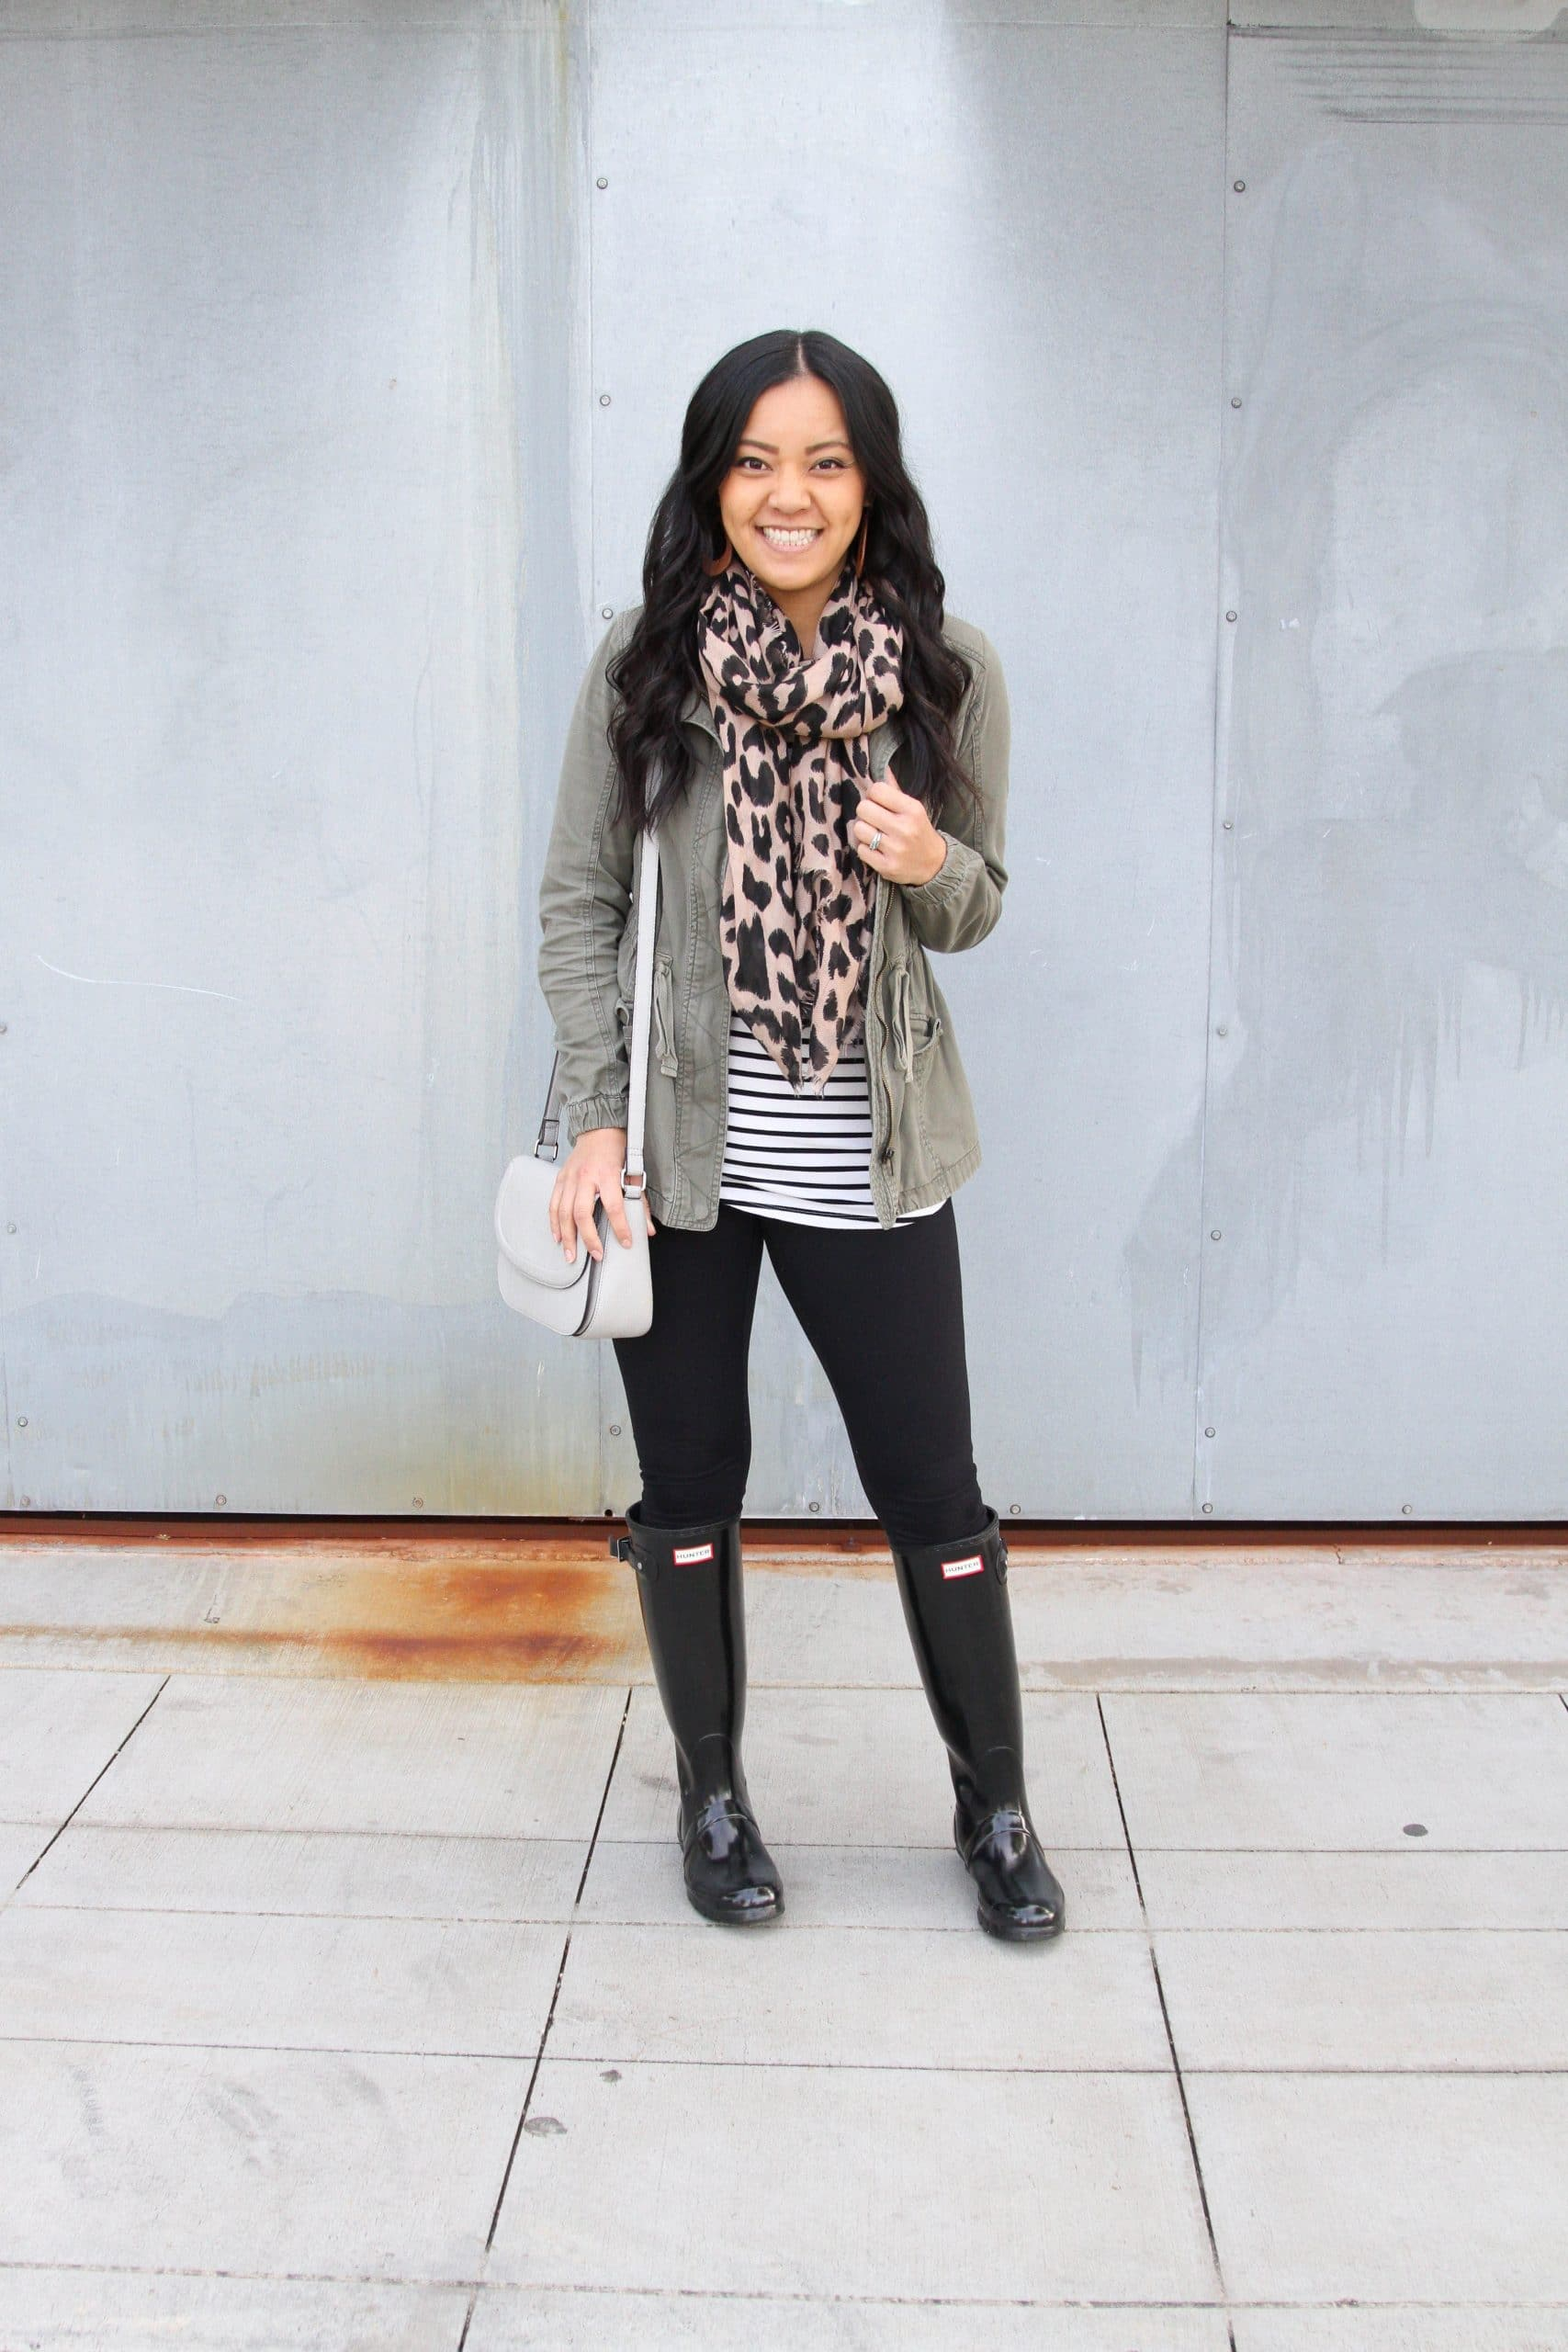 Winter Leggings Outfit: striped tee + black leggings + olive utility jacket + black rain boots + leopard scarf + gray crossbody bag + brown leather earrings